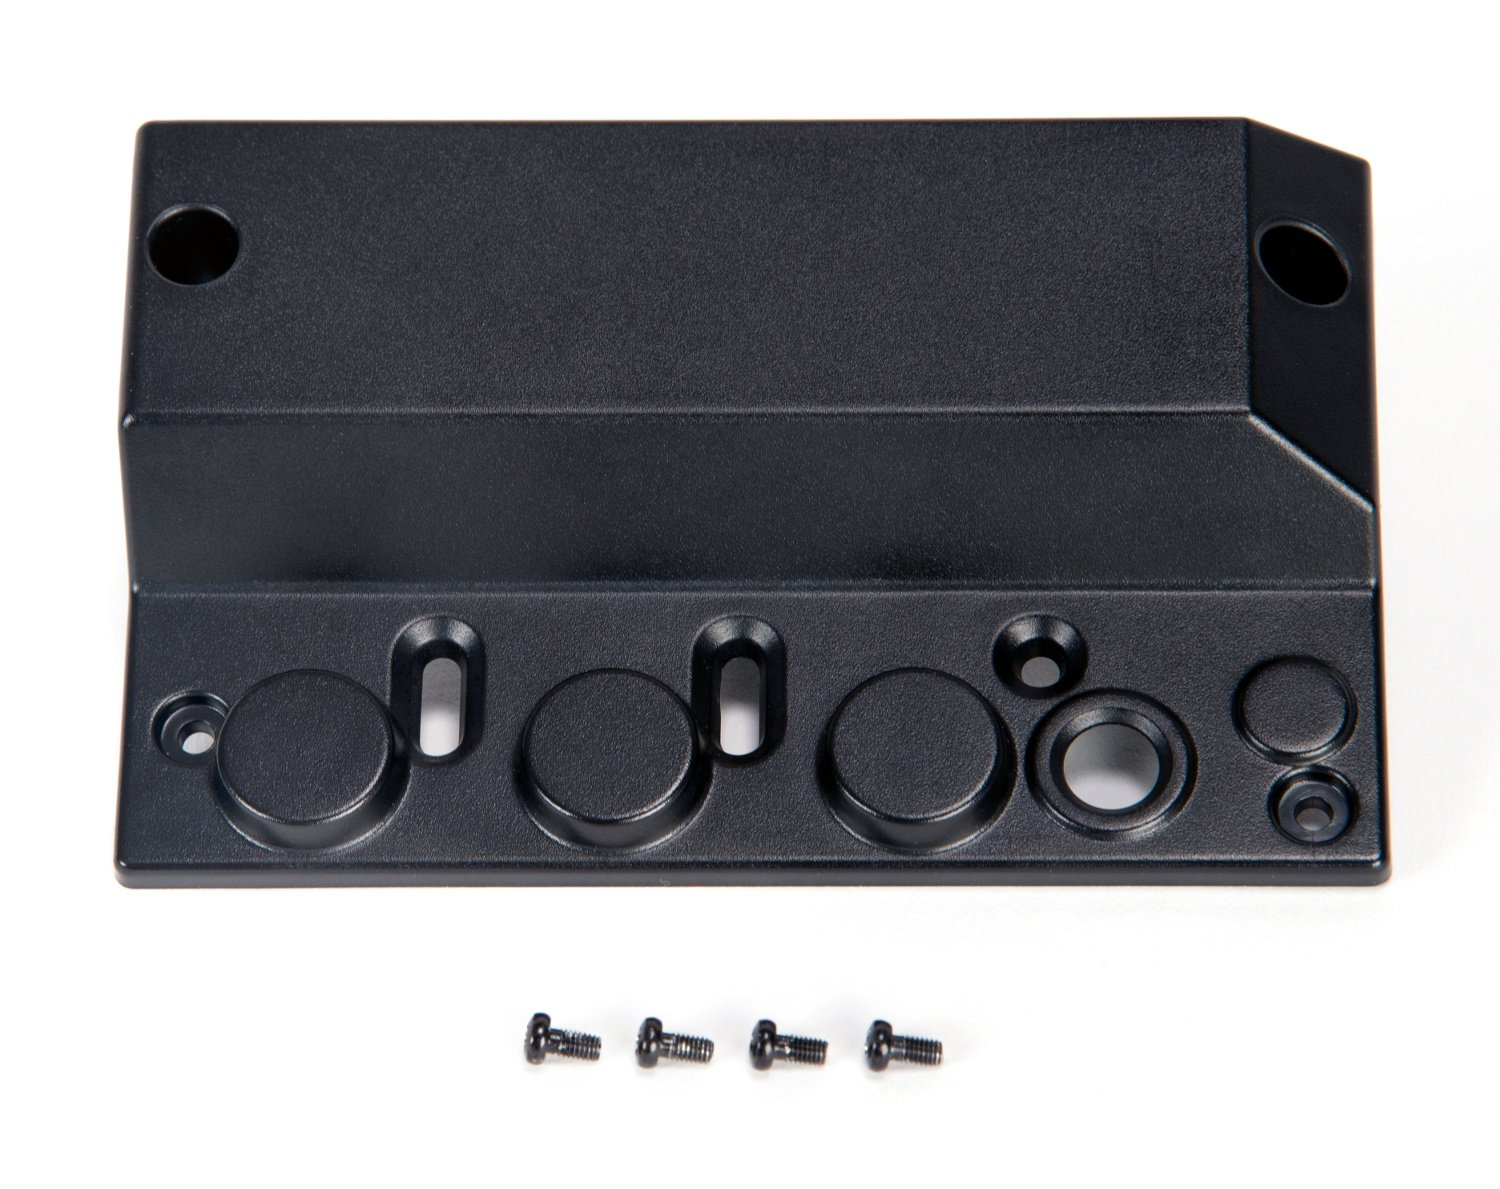 Security Cover for QSC K.2 Series Speakers